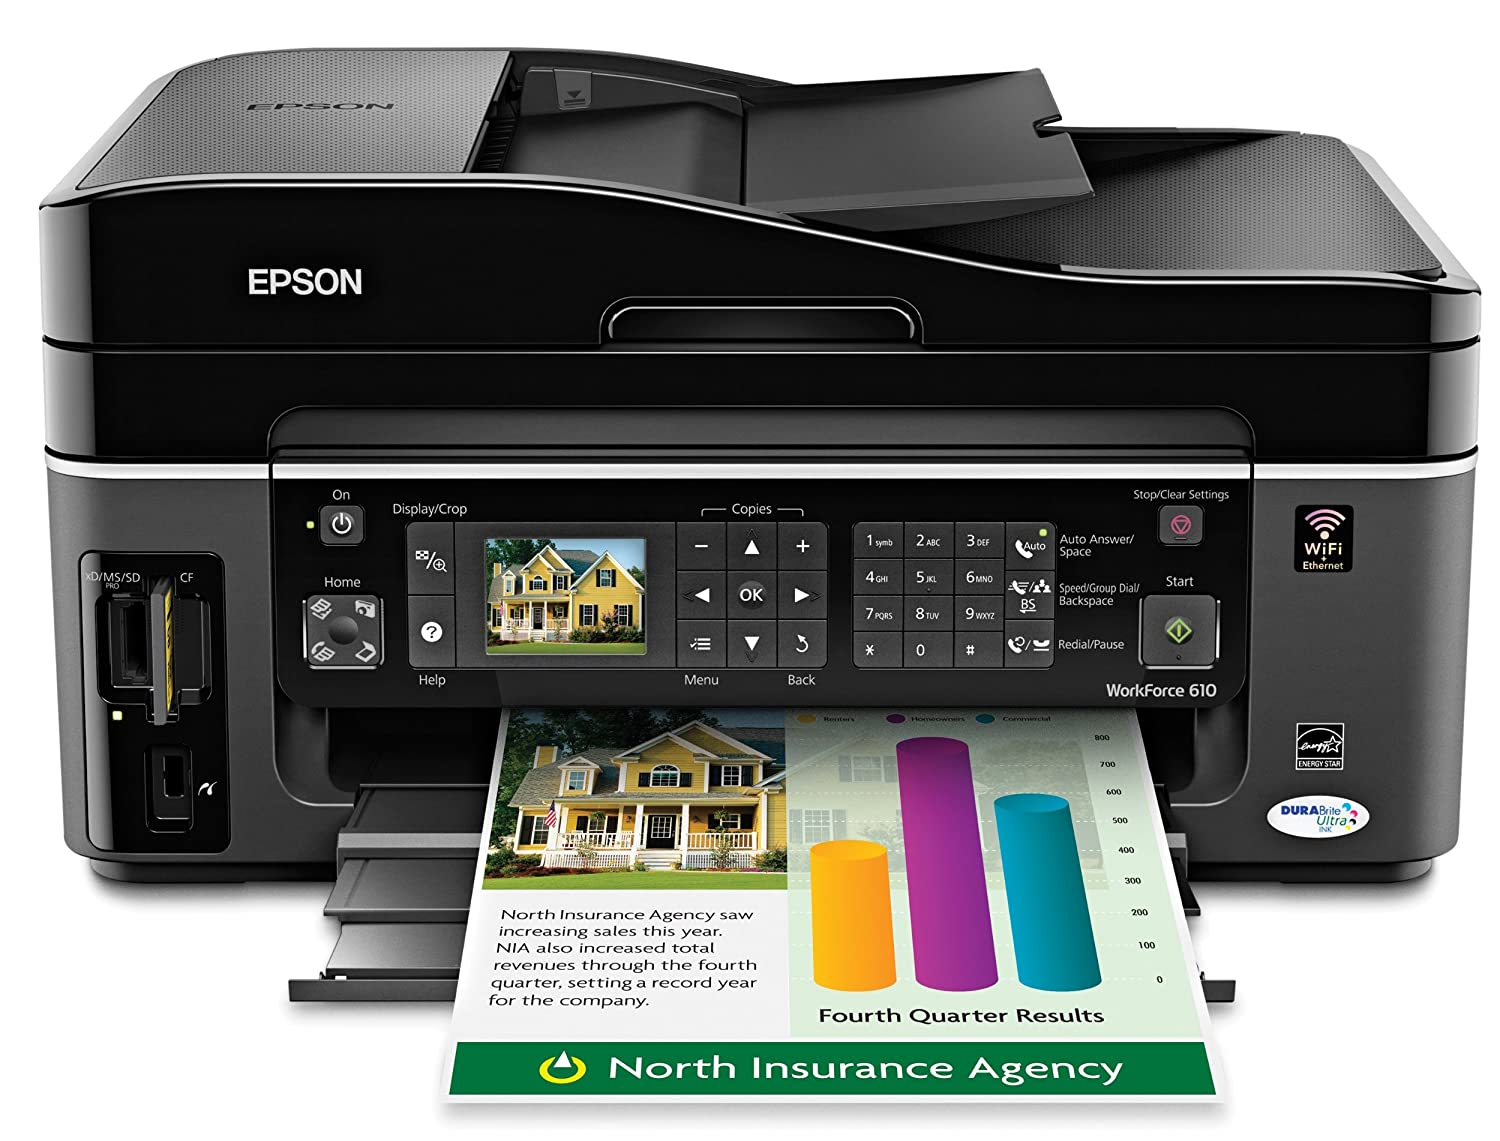 Amazon.com : Epson WorkForce 610 Wireless Color Inkjet All-in-One Printer  (C11CA50201) : Multifunction Office Machines : Electronics